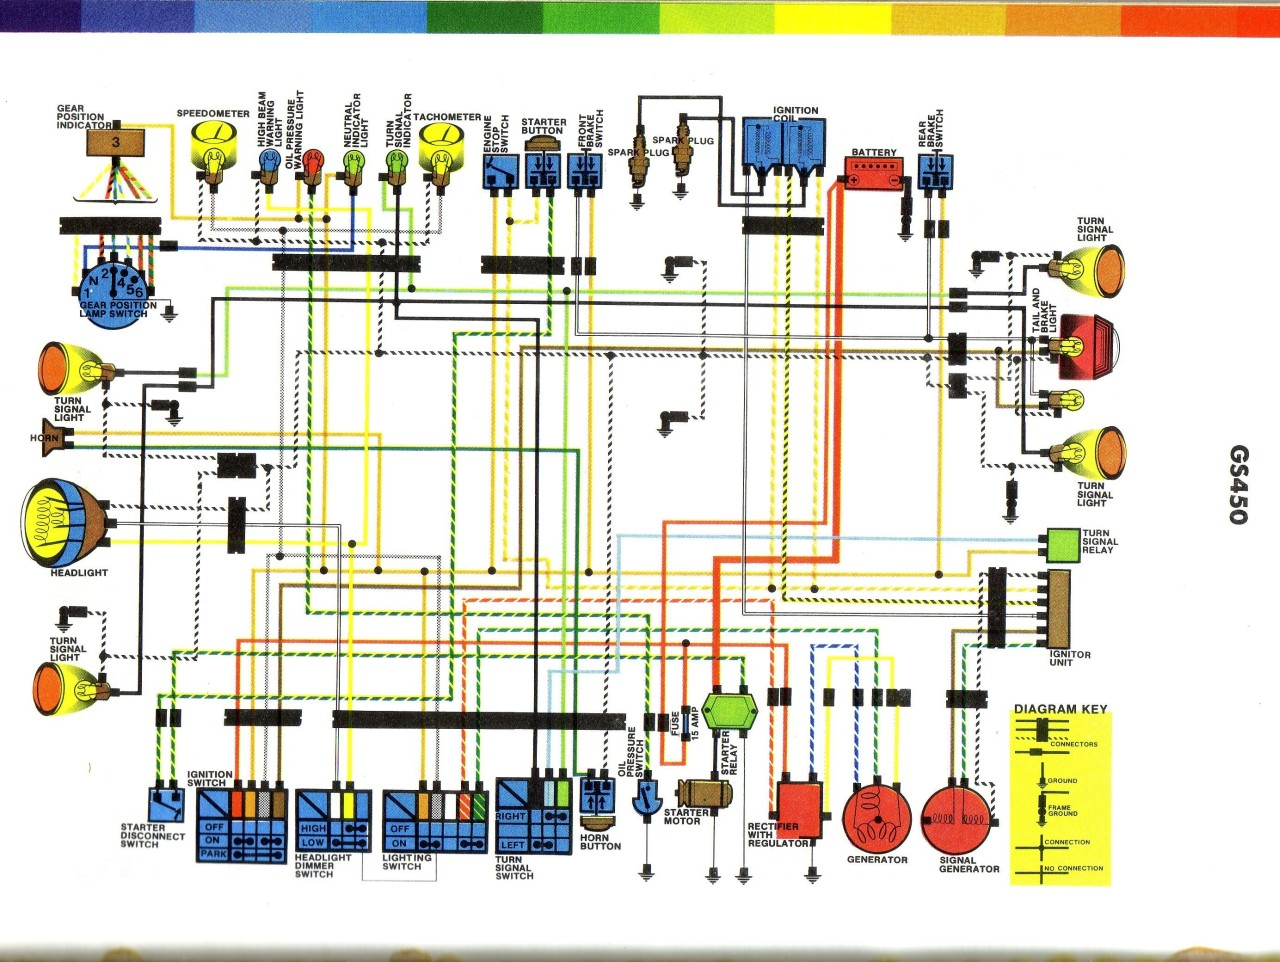 hight resolution of gs750 wiring diagram wiring diagram syssuzuki gs 750 wiring diagram wiring diagram technic gs750 wiring diagram